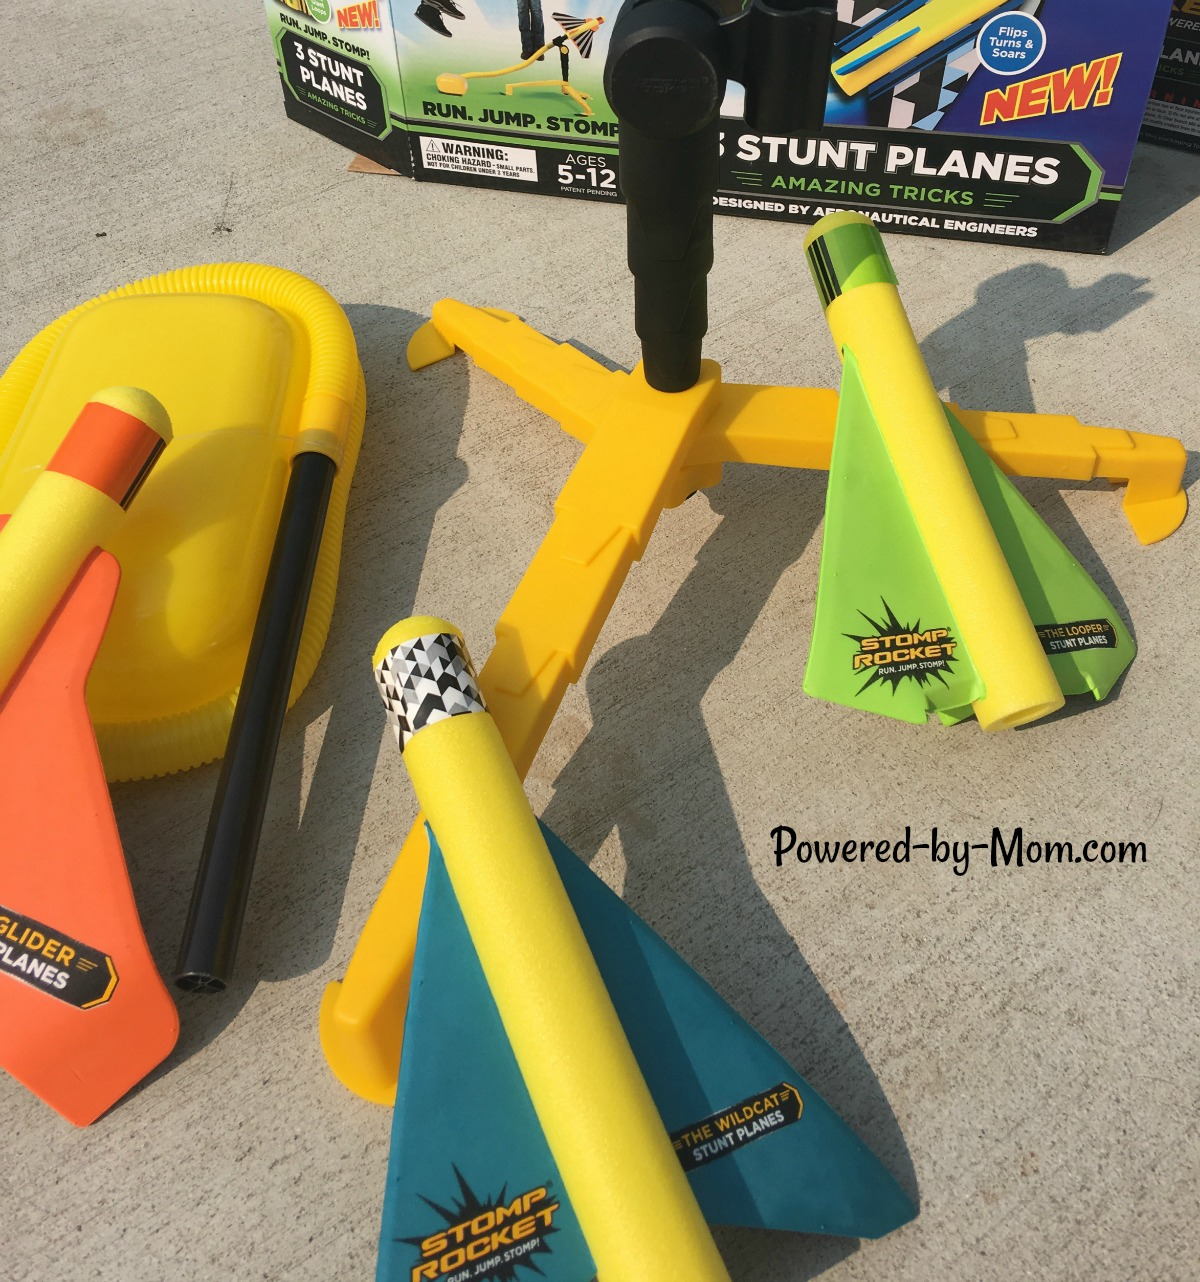 Stomp Rocket Stunt Plane - Powered by Mom